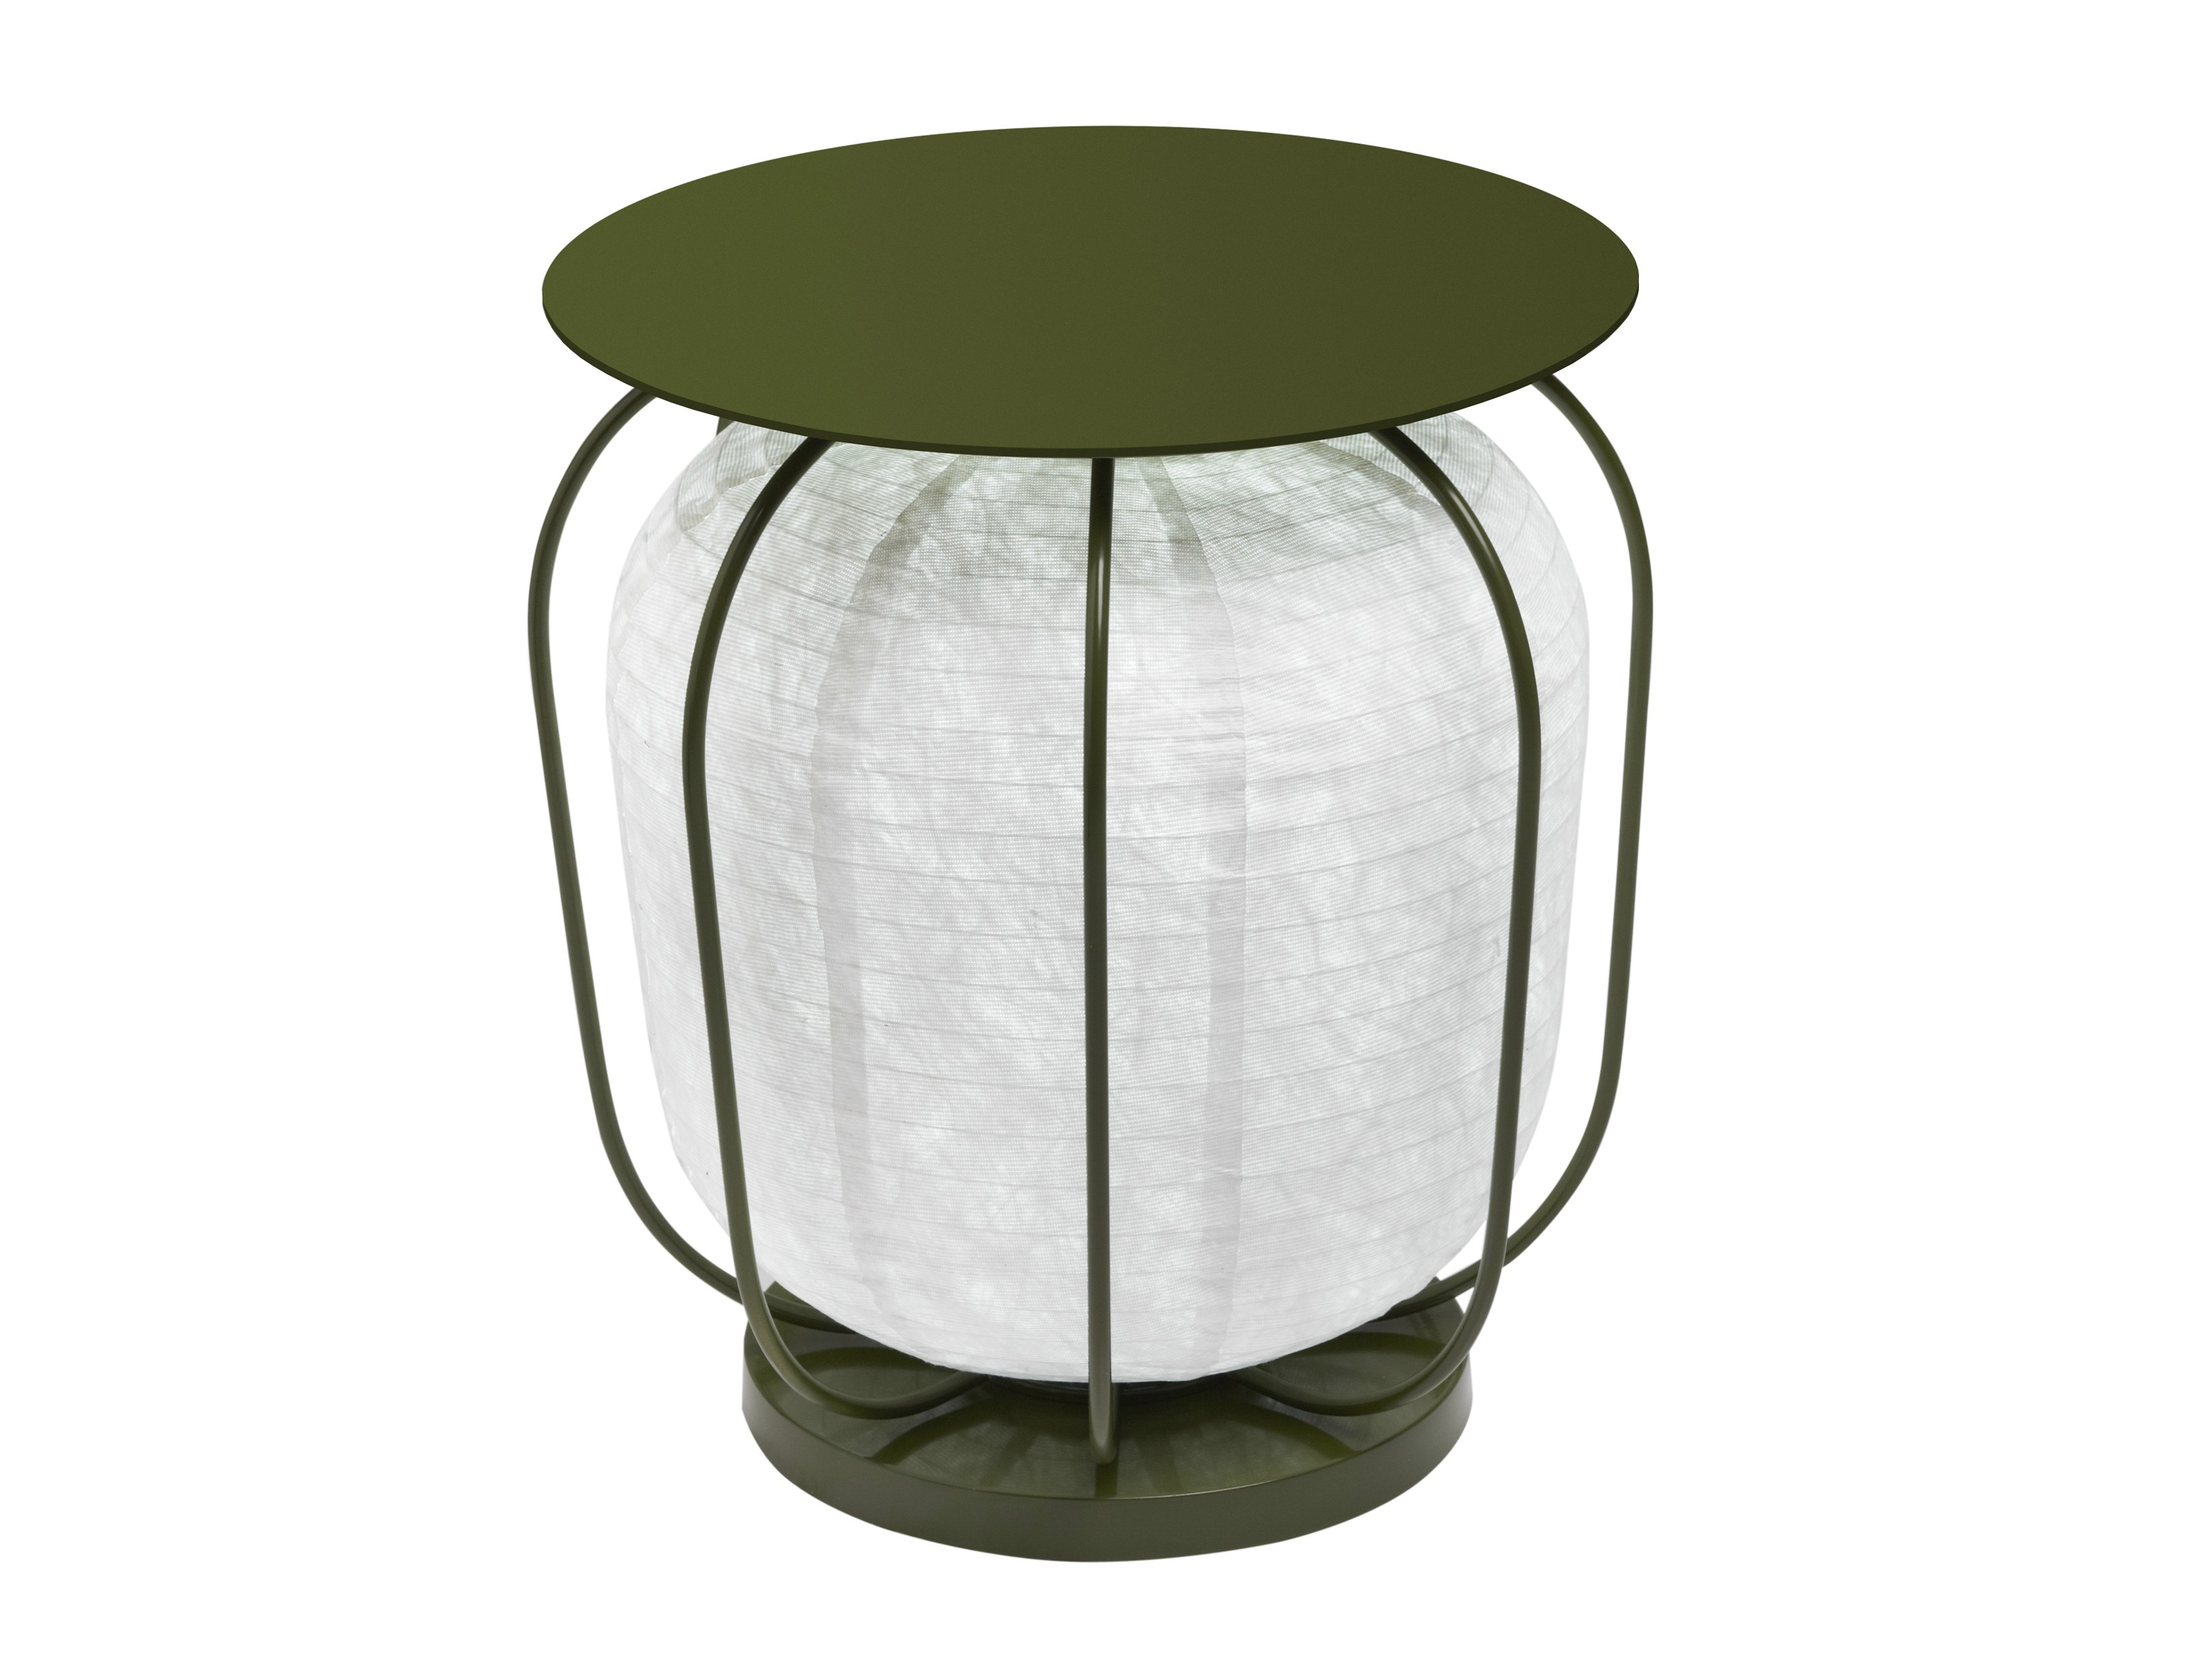 ROUND GARDEN SIDE TABLE WITH BUILT-IN LIGHTS IN & OUT